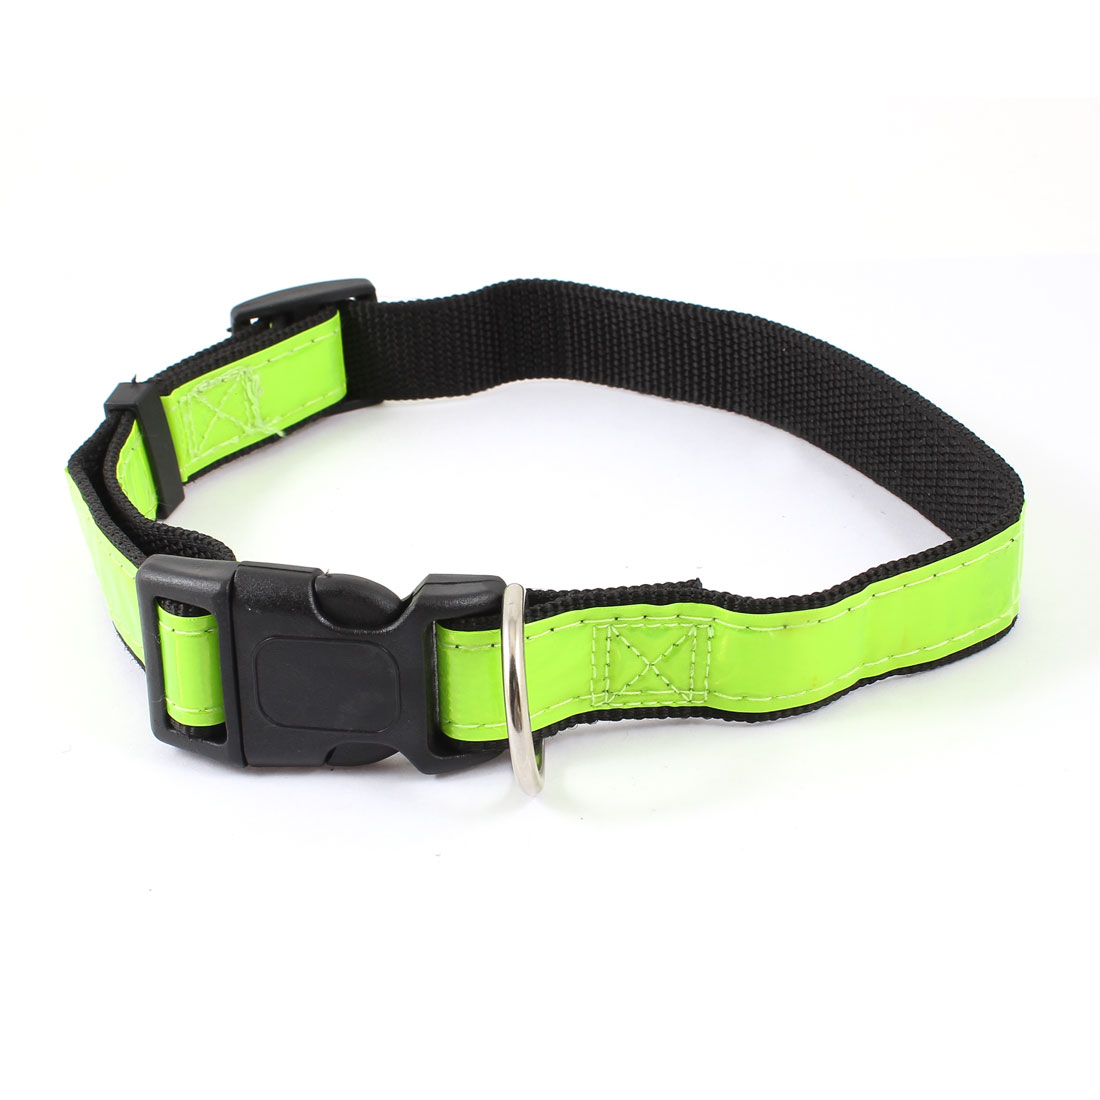 Release Buckle Night Safety Tracking Reflective Nylon Adjustable Belt Collar Yellow Green Black for Pet Cat Dog Doggy